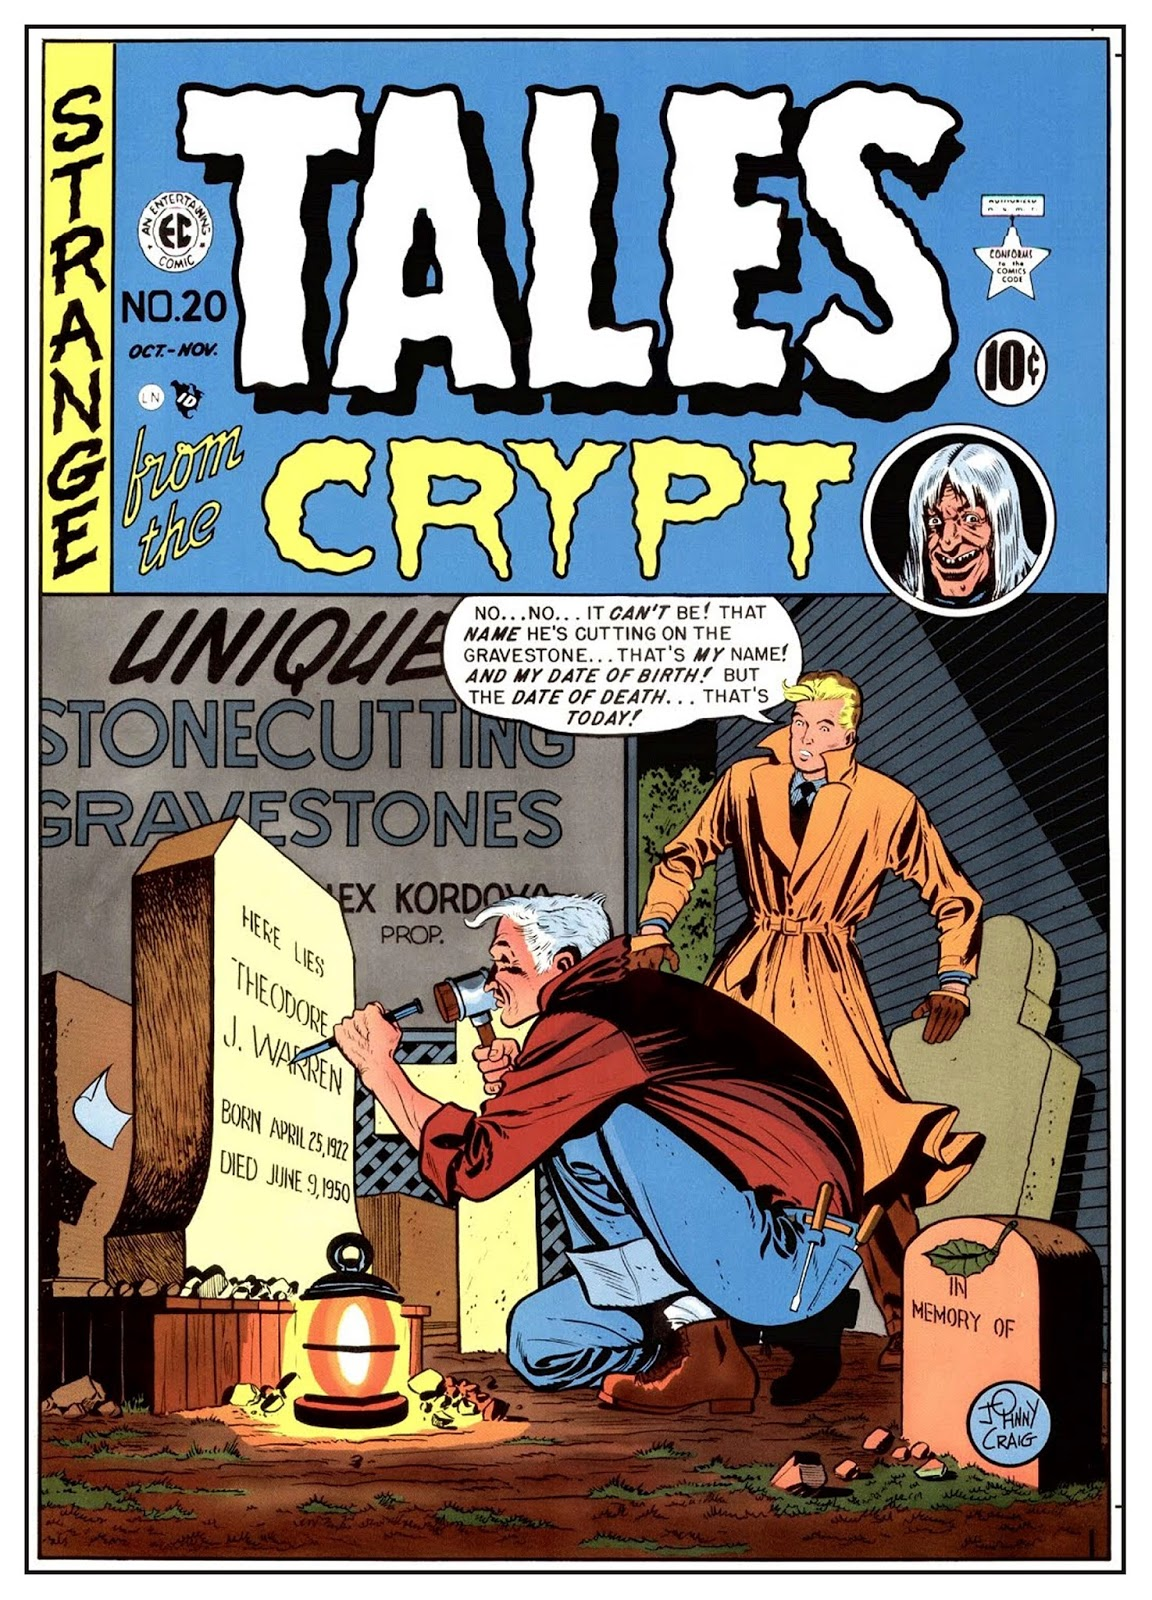 http://www.totalcomicmayhem.com/2014/08/tales-from-crypt-key-issues.html